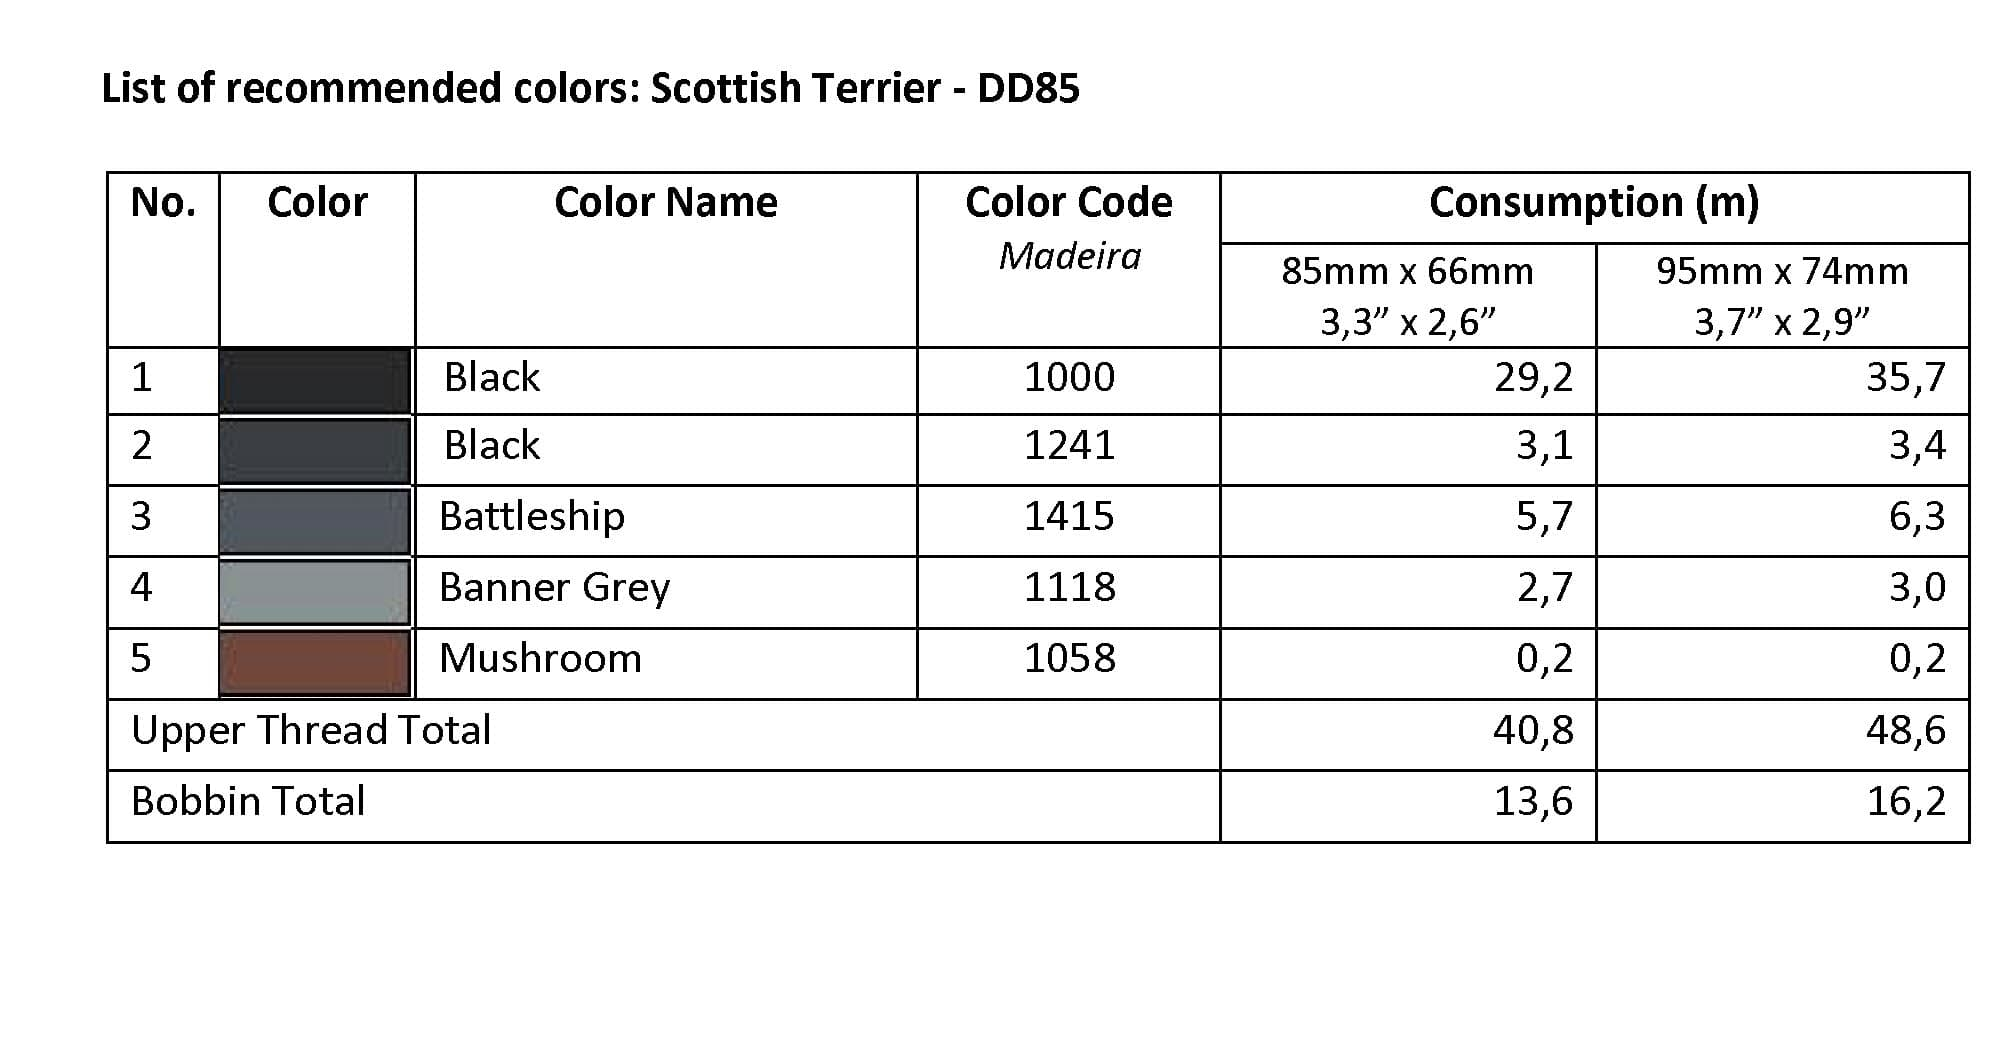 List of Recommended Colors -  Scottish Terrier DD85